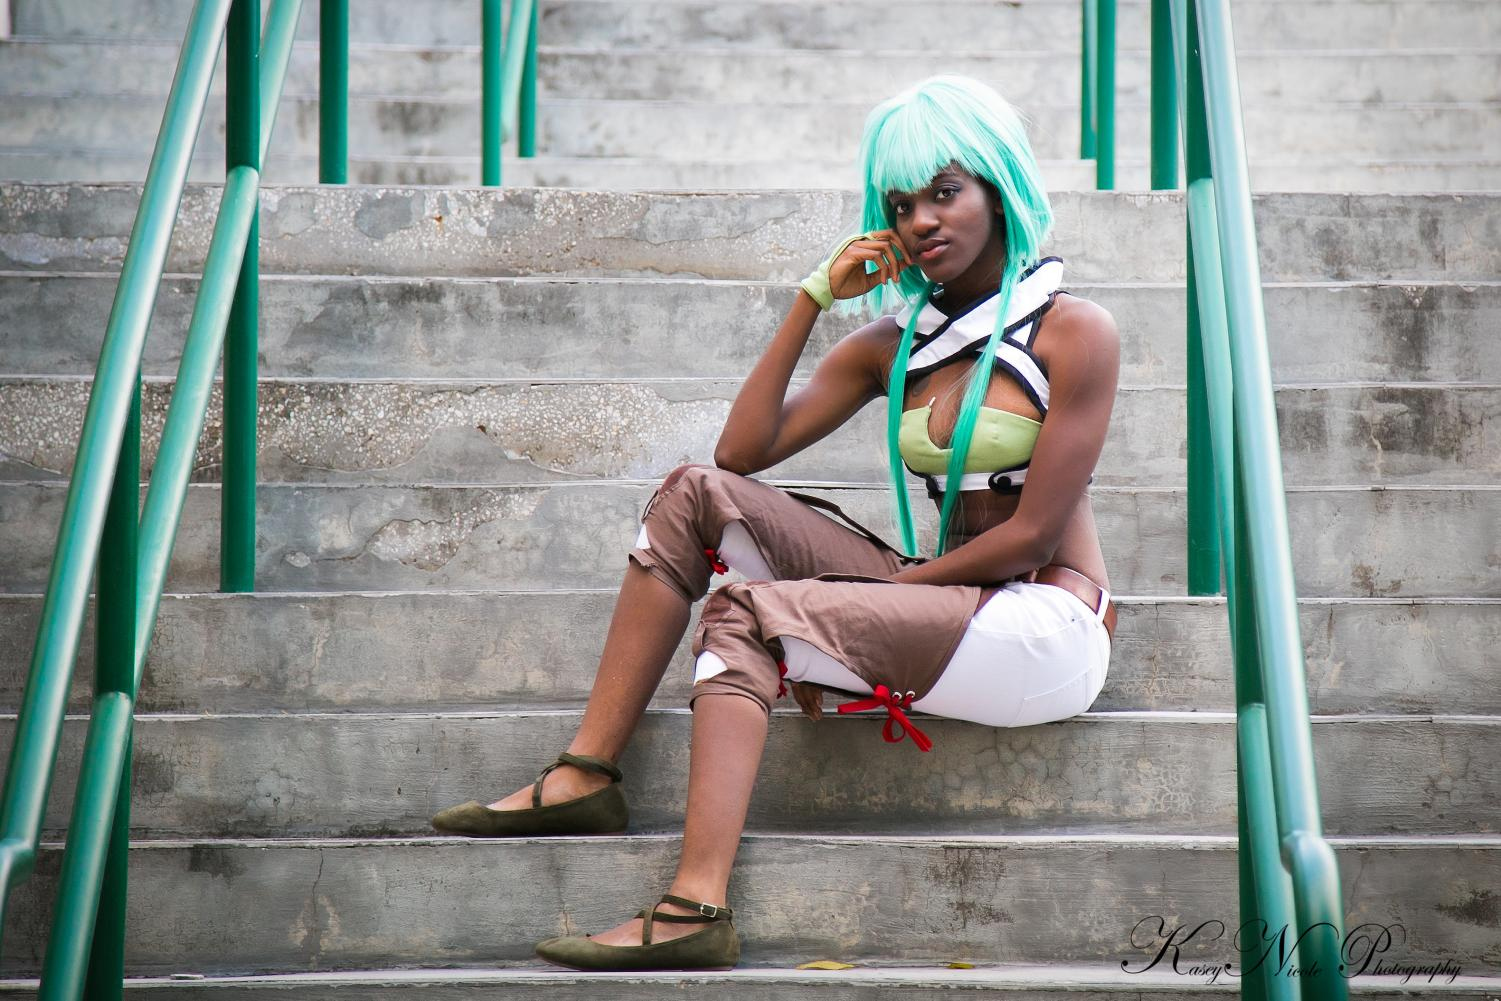 Chante Knight dresses up as Emerald from the animated Rooster Teeth series: RWBY at the Holiday Matsuri anime convention in Florida. Knight, graduate student in FAA, uses her experience with cosplay and sewing in her studies as a costume technology student.